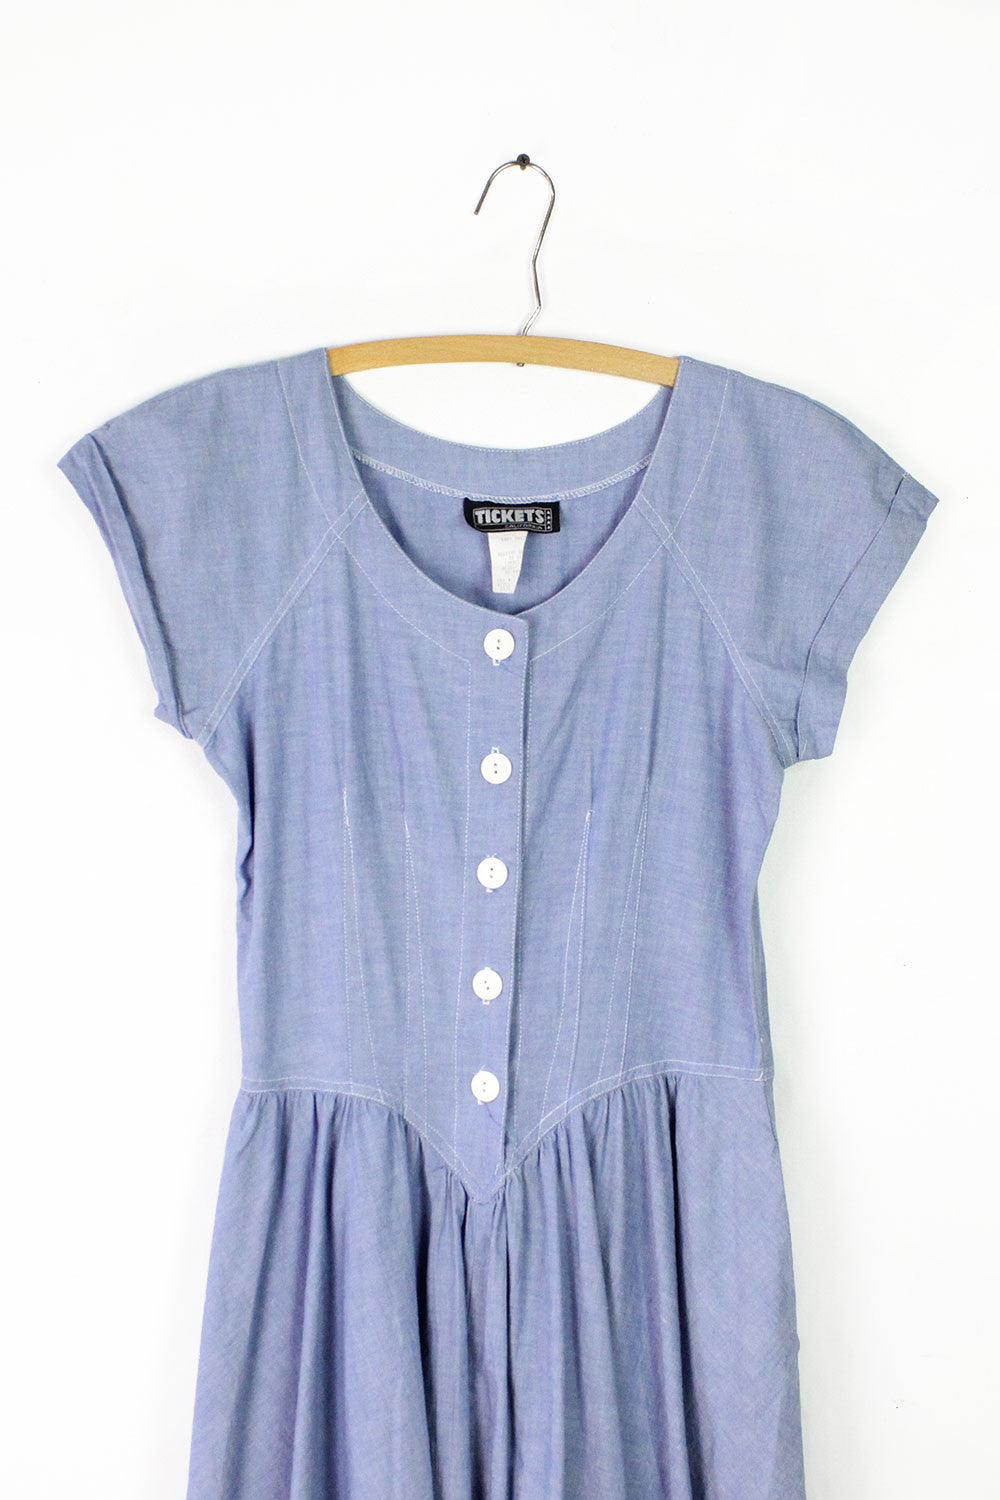 Denim Aurora Dress S/M